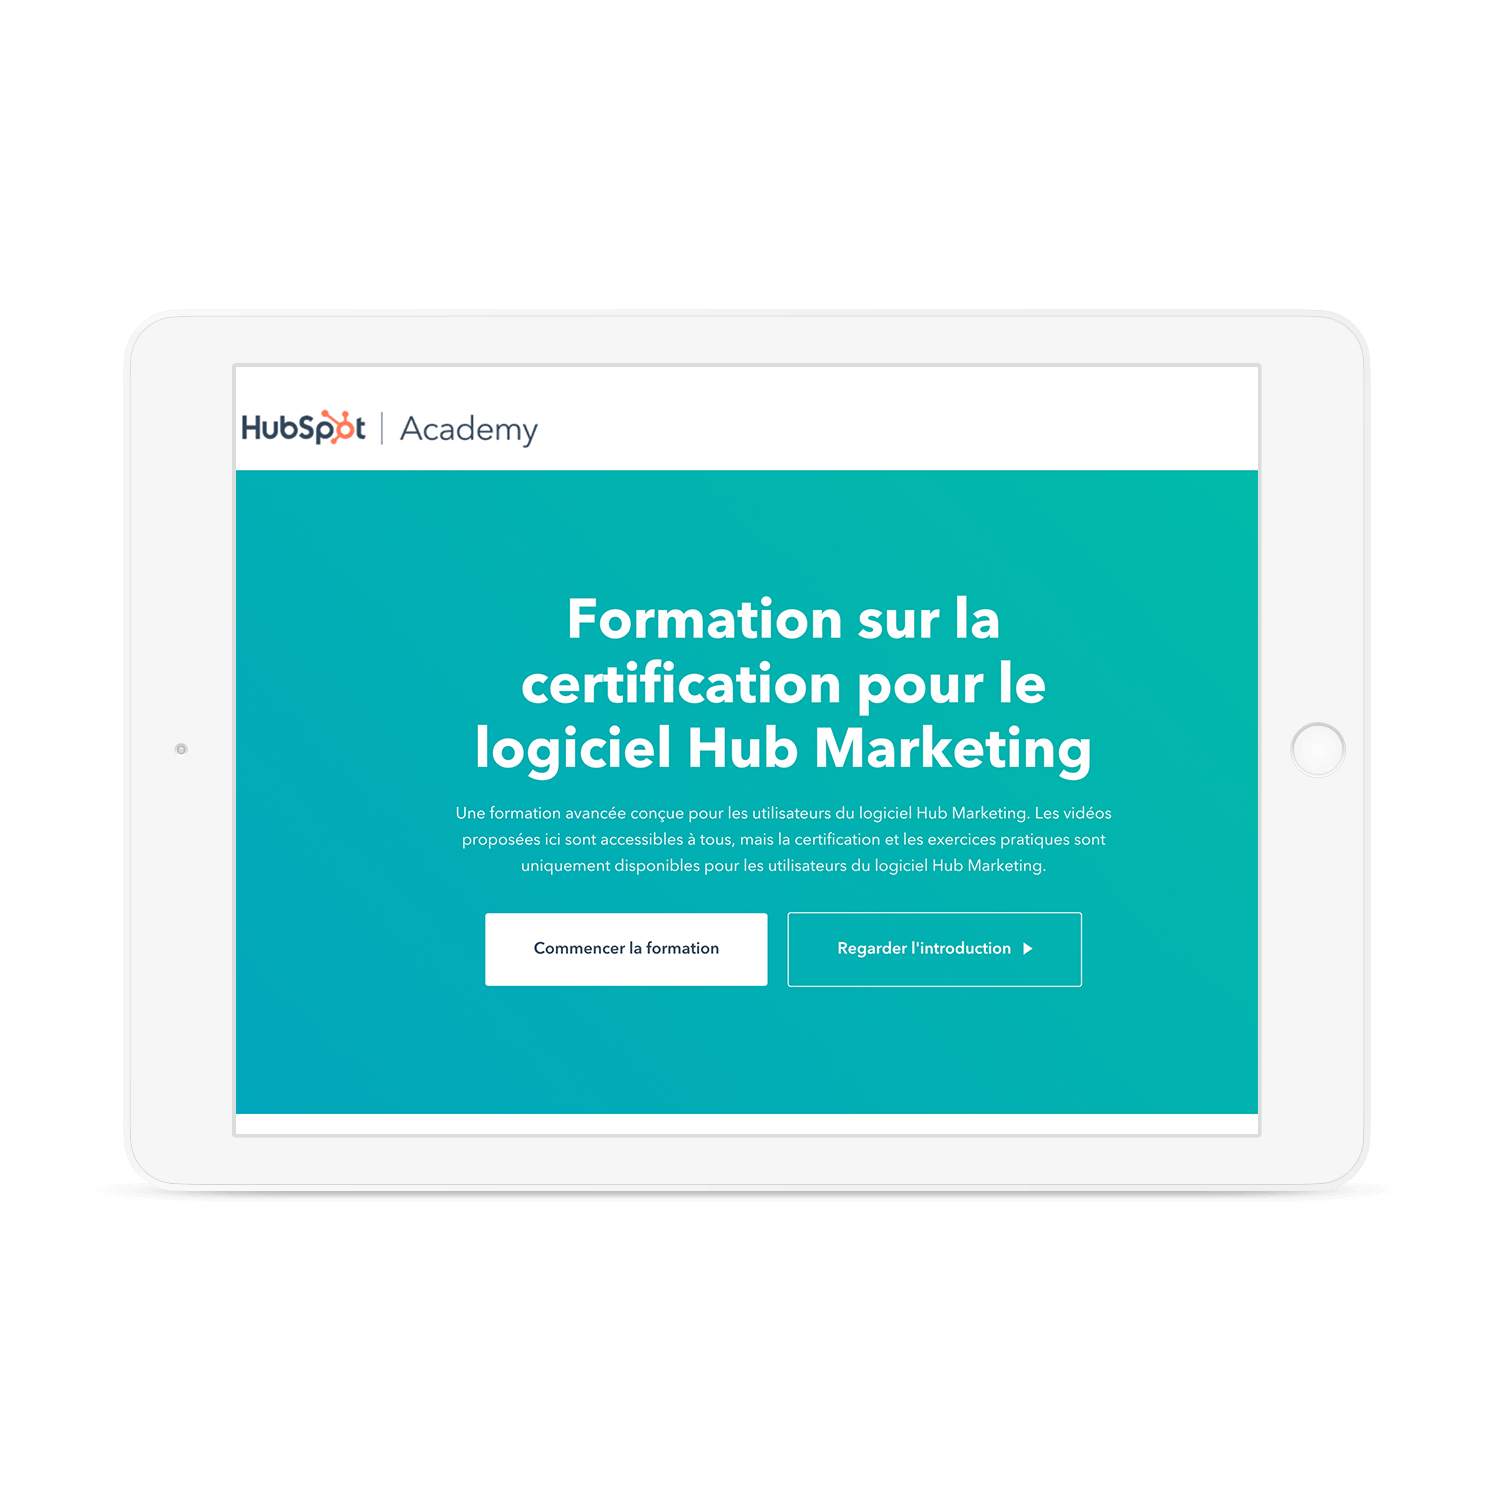 Certification HubSpot Academy sur le Marketing Hub